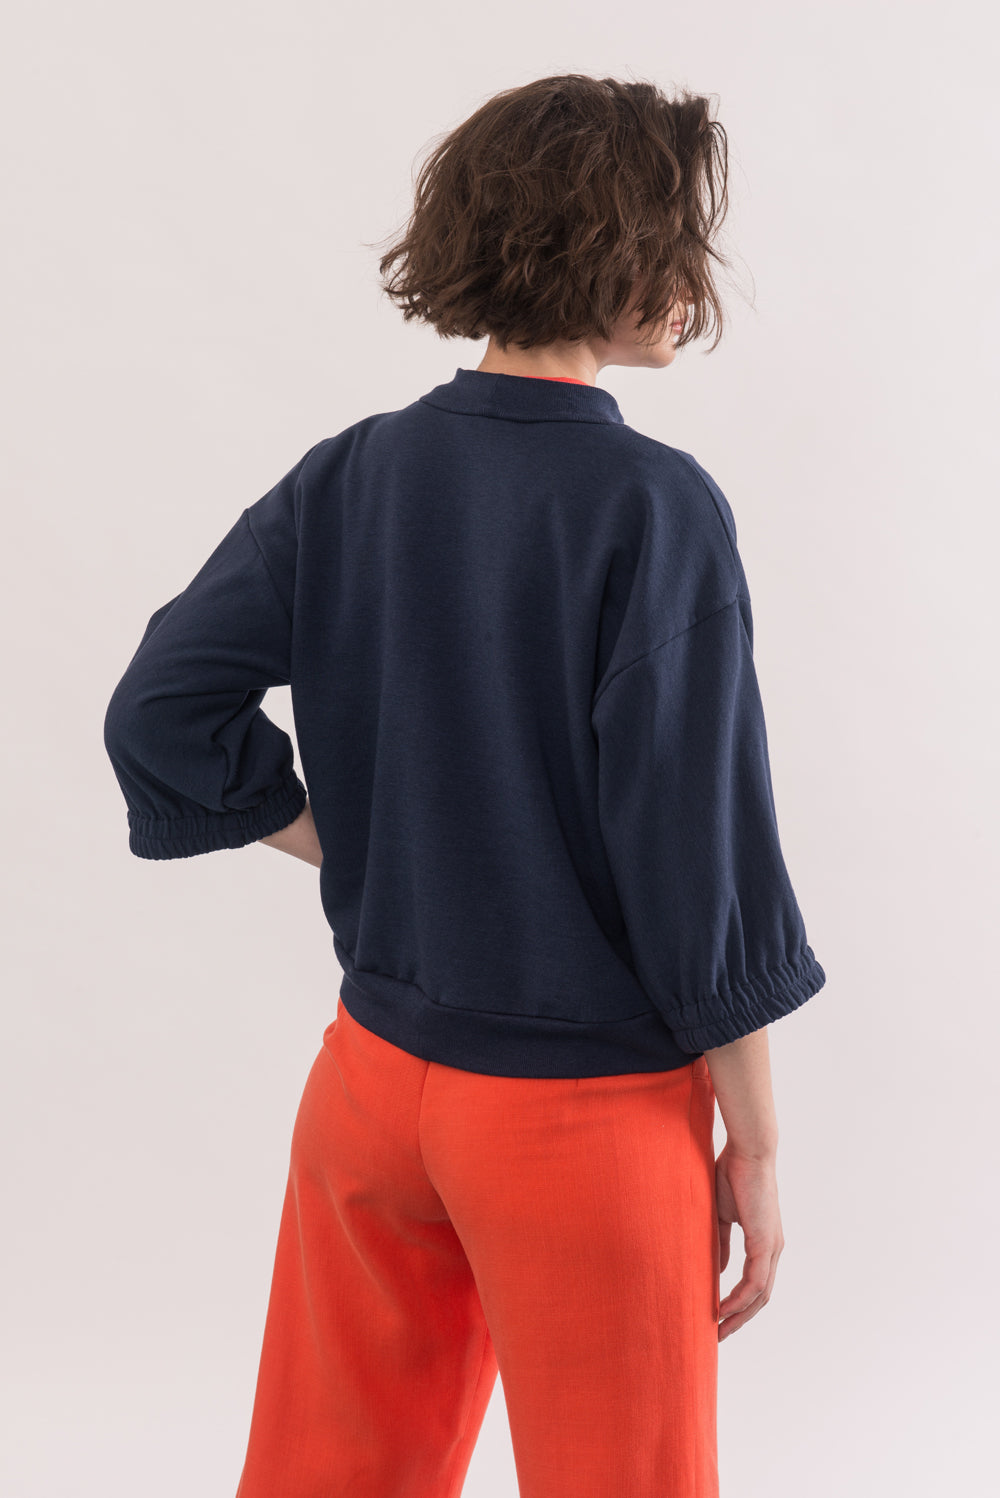 Popova Sweater by Jennifer Glasgow, Navy, back view, cropped, 3/4 sleeves, dropped shoulders, ribbed neckline and waist, eco-friendly, OEKO Standard 100 certification, sizes XS to XL, made in Montreal